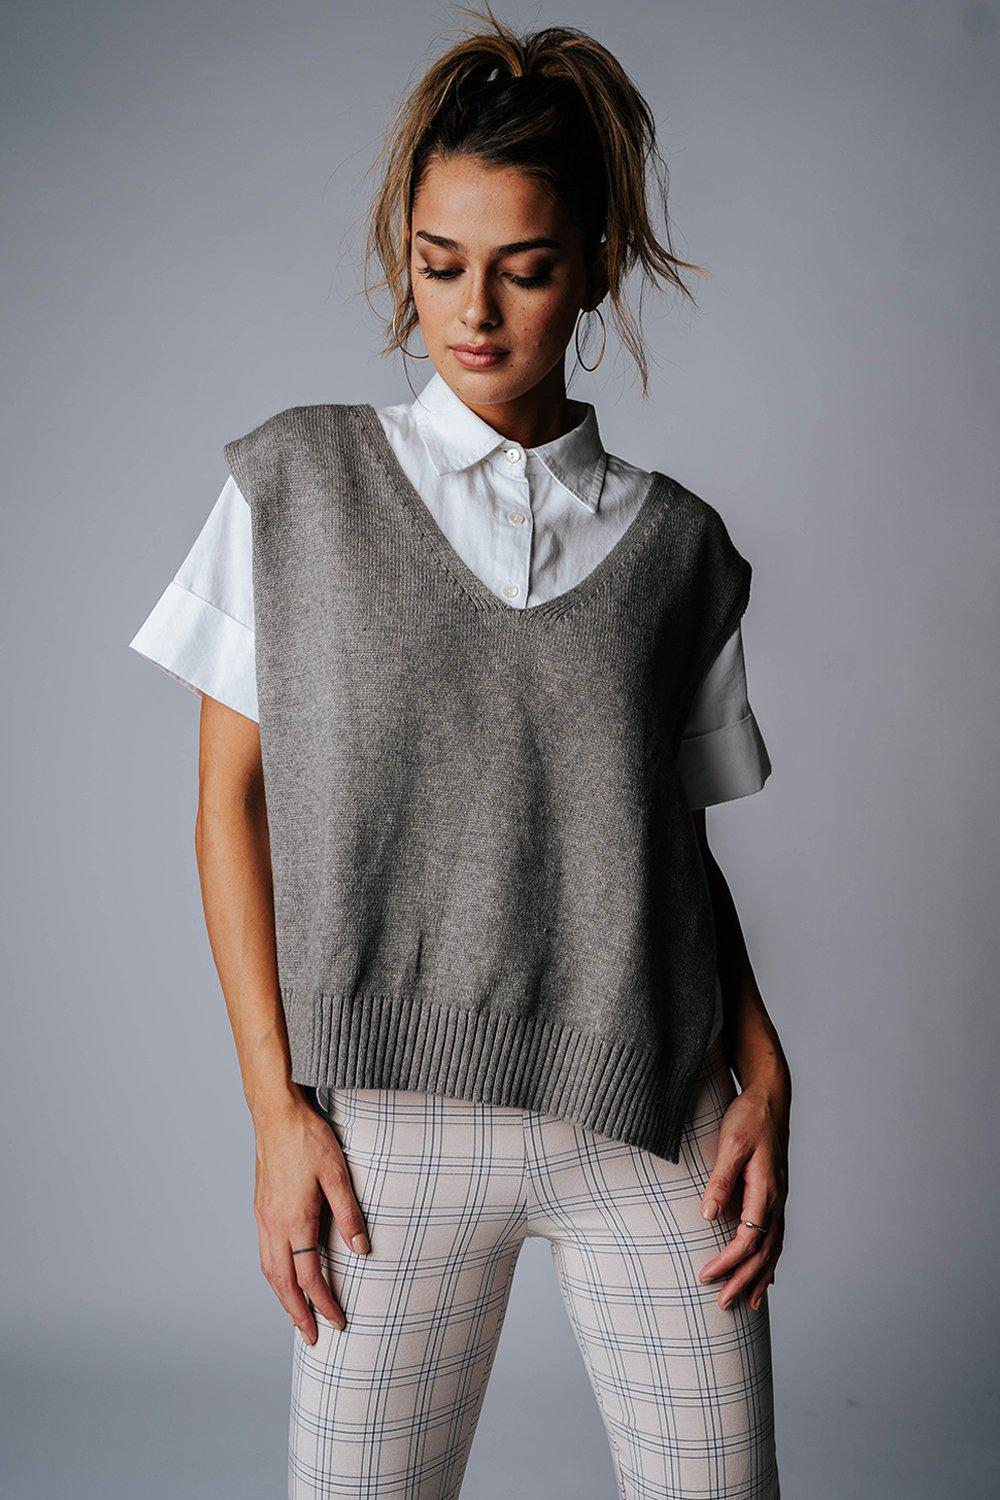 best_seller, No Interruptions Sweater Vest in Grey, Top, women's clothing, dresses, skirts, coats, jackets, shoes, boots, tops, tee shirts, jeans, free people, levi's, rollas, jumpsuits, bottoms, tops, sweaters, pullovers, pants, shorts, sweats,.